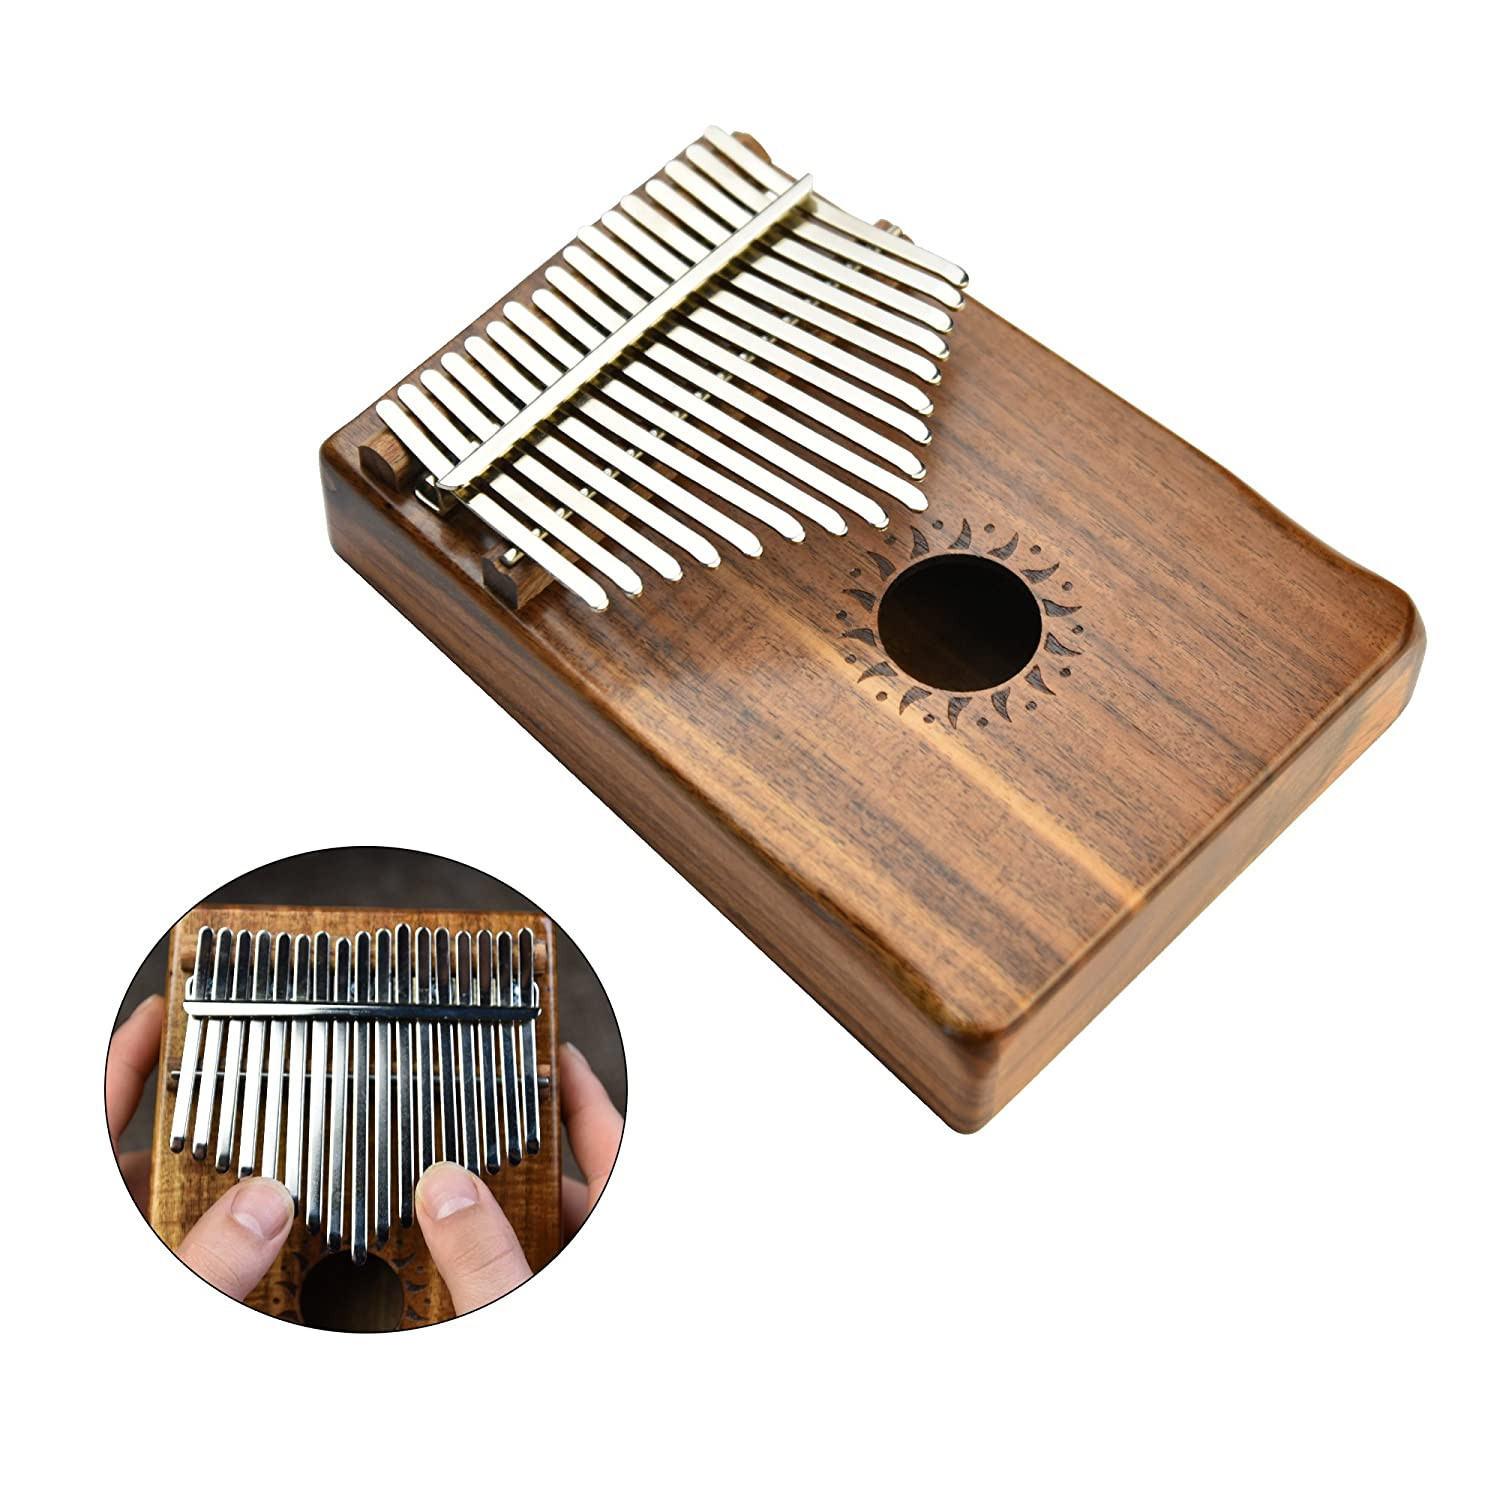 17 Key Kalimba Thumb Piano Mbira with Solid Koa Wood and Mineral Steel Keys (Includes Tuning Hammer, Music Book, Instructions, and Cloth Carrying Bag) Everyman Products